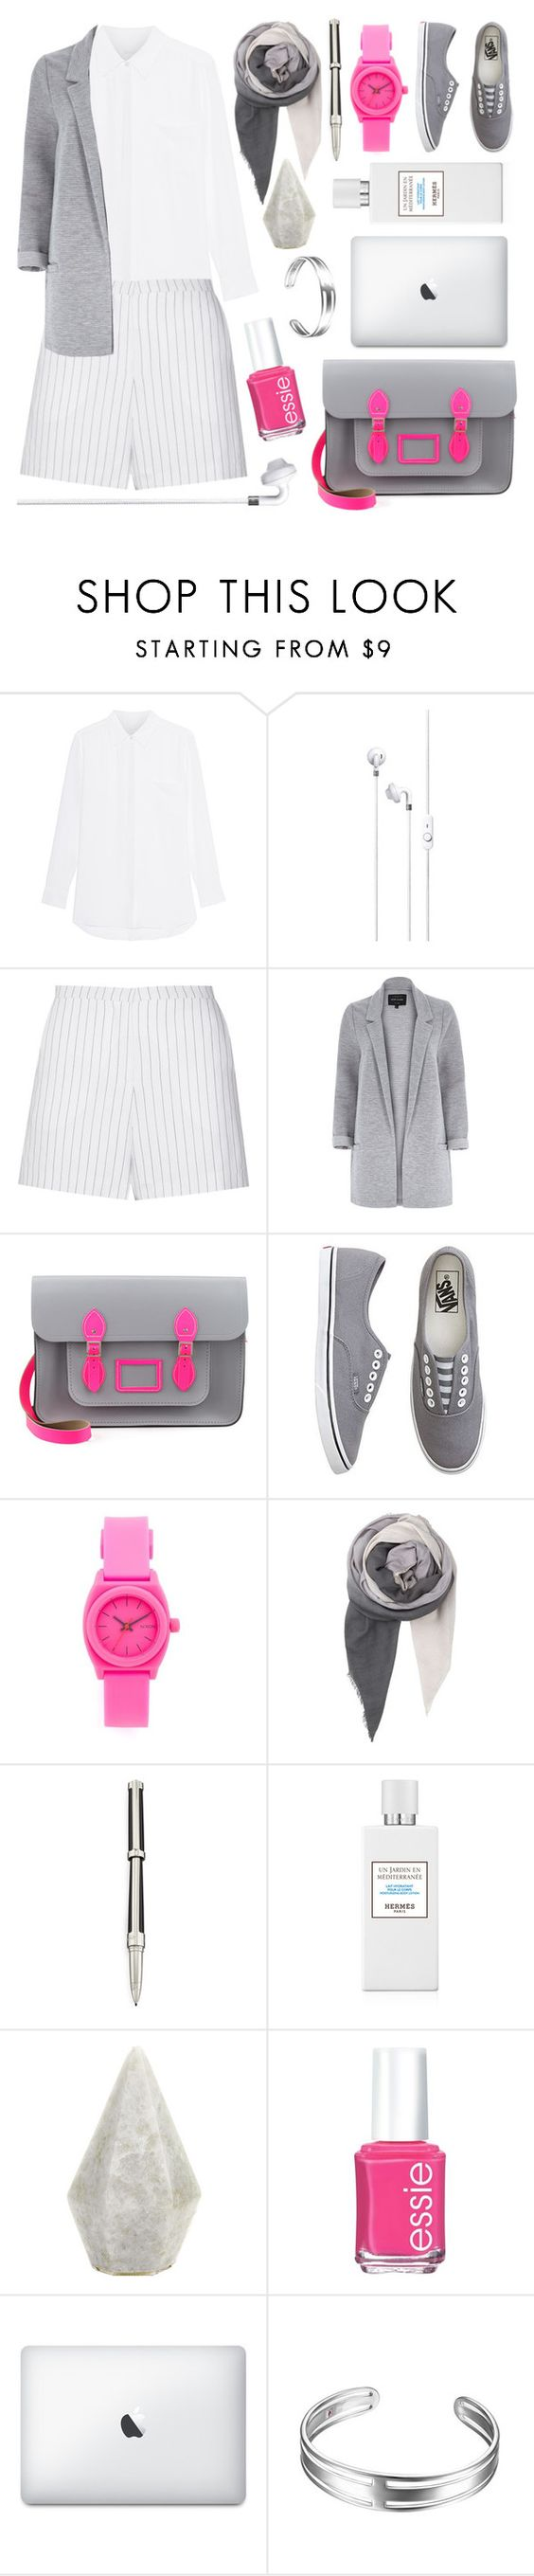 """""""It's a Grey Area"""" by lamemechose ❤ liked on Polyvore featuring Jadicted, Sandro, River Island, The Cambridge Satchel Company, Vans, Nixon, BeckSöndergaard, S.T. Dupont and Essie"""